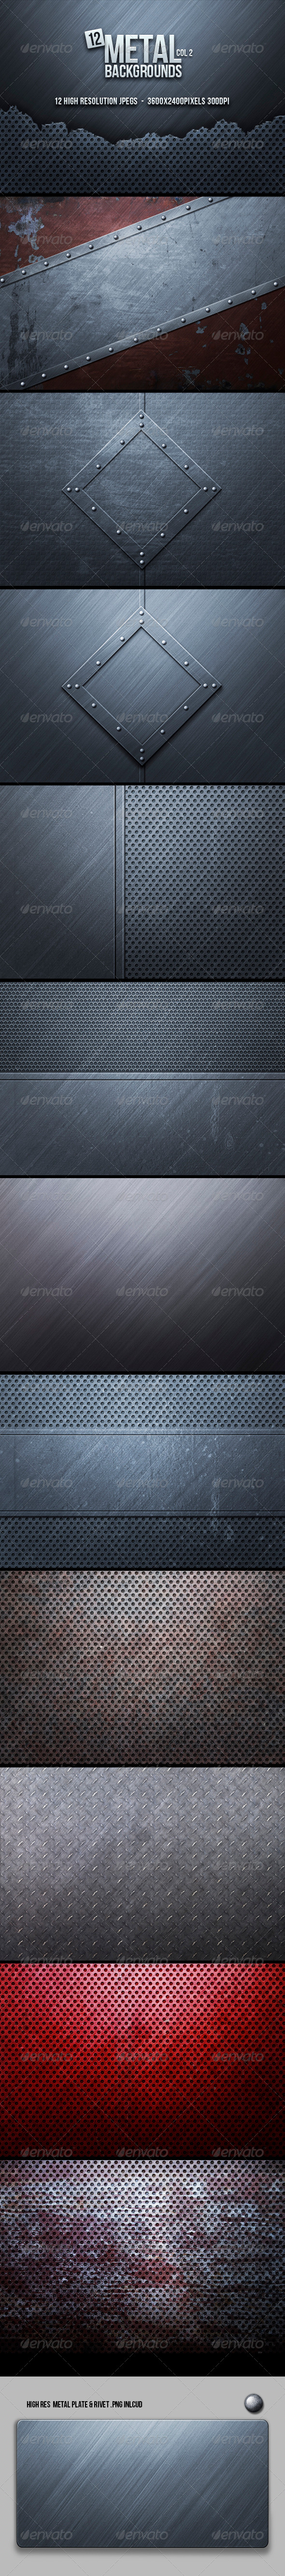 Metal Backgrounds Col2 - Backgrounds Graphics